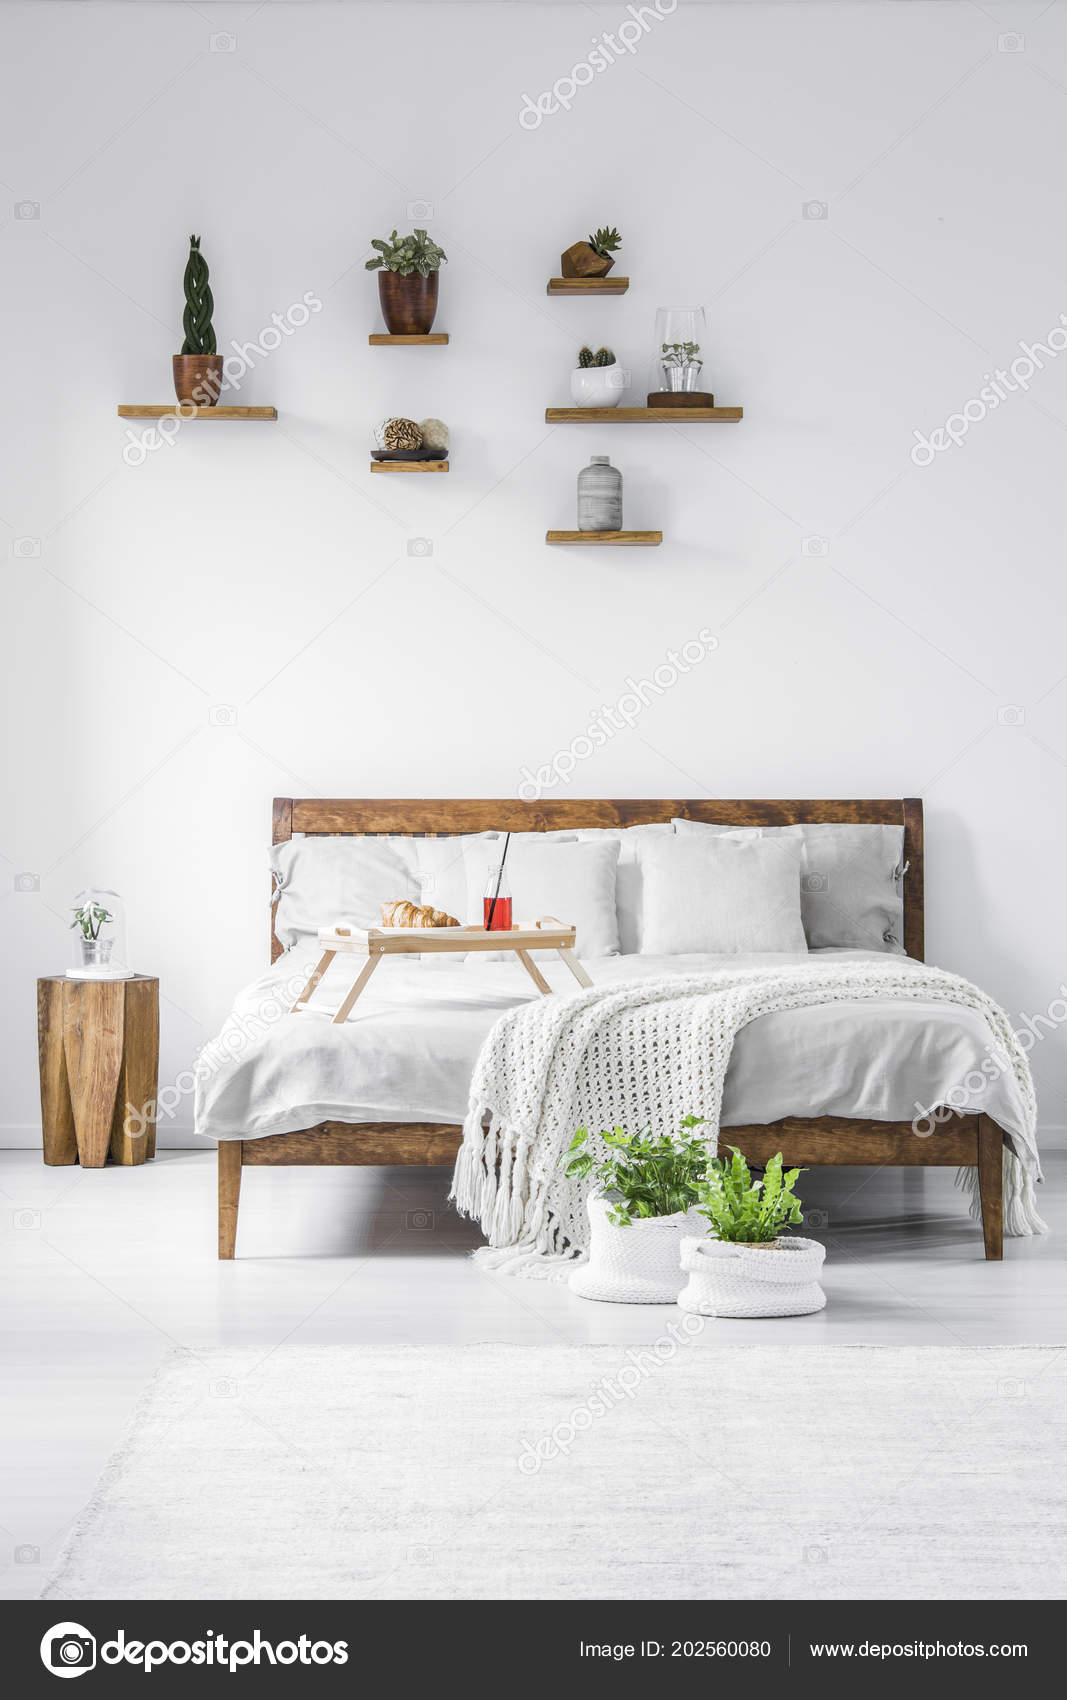 Shelf Above Bed Instead Of Nightstand Plants Decorations Placed Shelves Wooden Double Bed White Bedding Breakfast Stock Photo C Photographee Eu 202560080